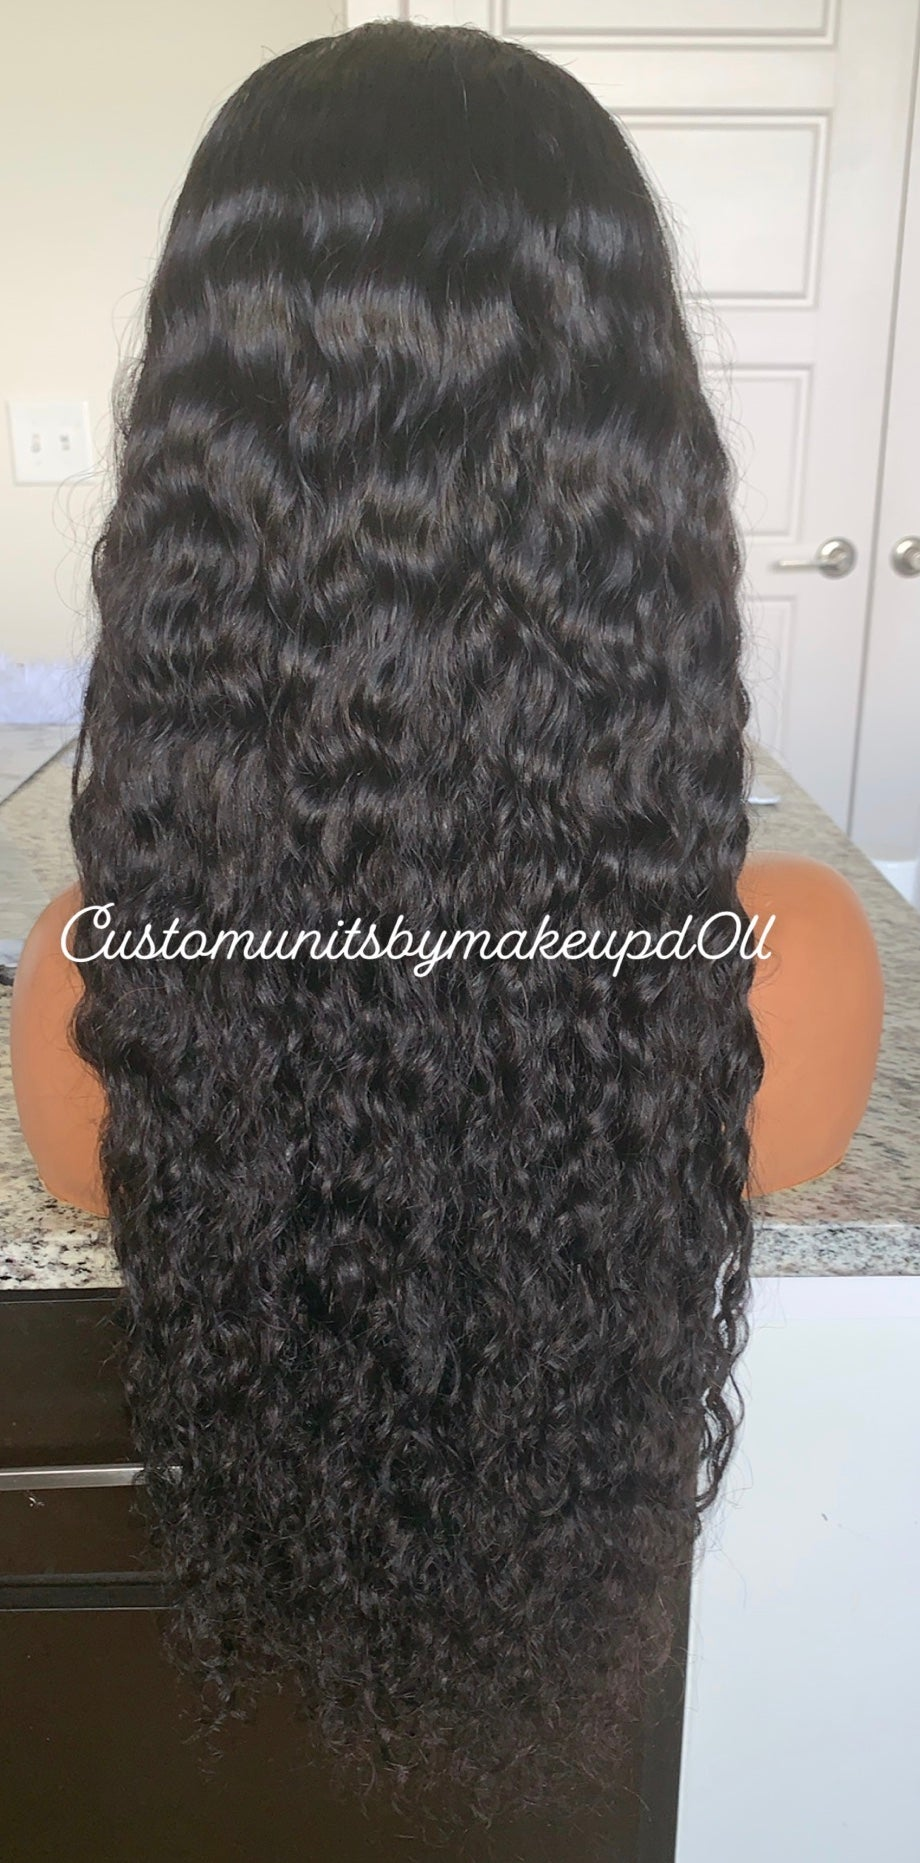 """Image of Indian Wavy/Curly 26"""" Lace Closure Wig!"""